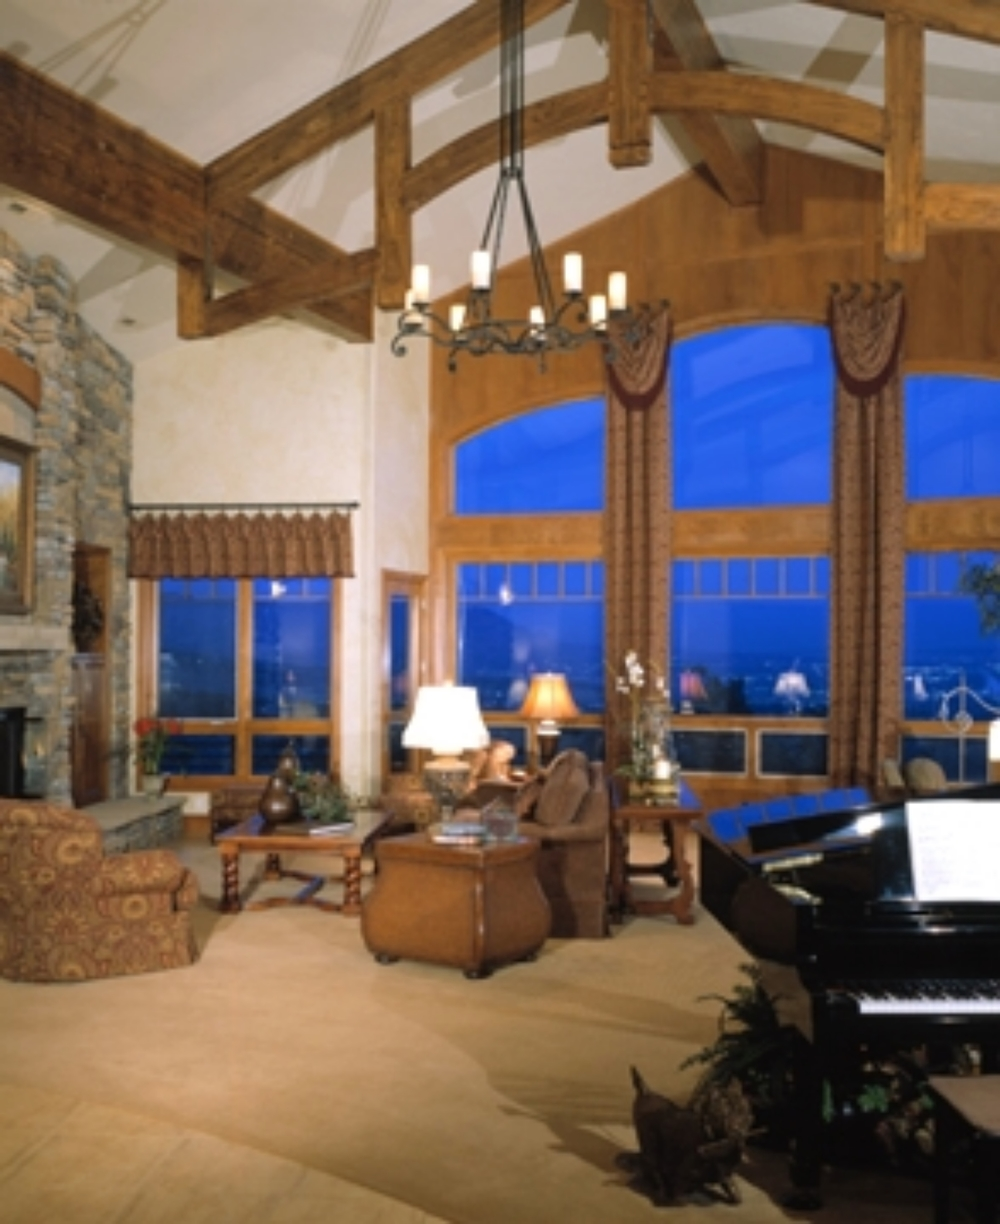 Soaring Ceilings and Stunning Views